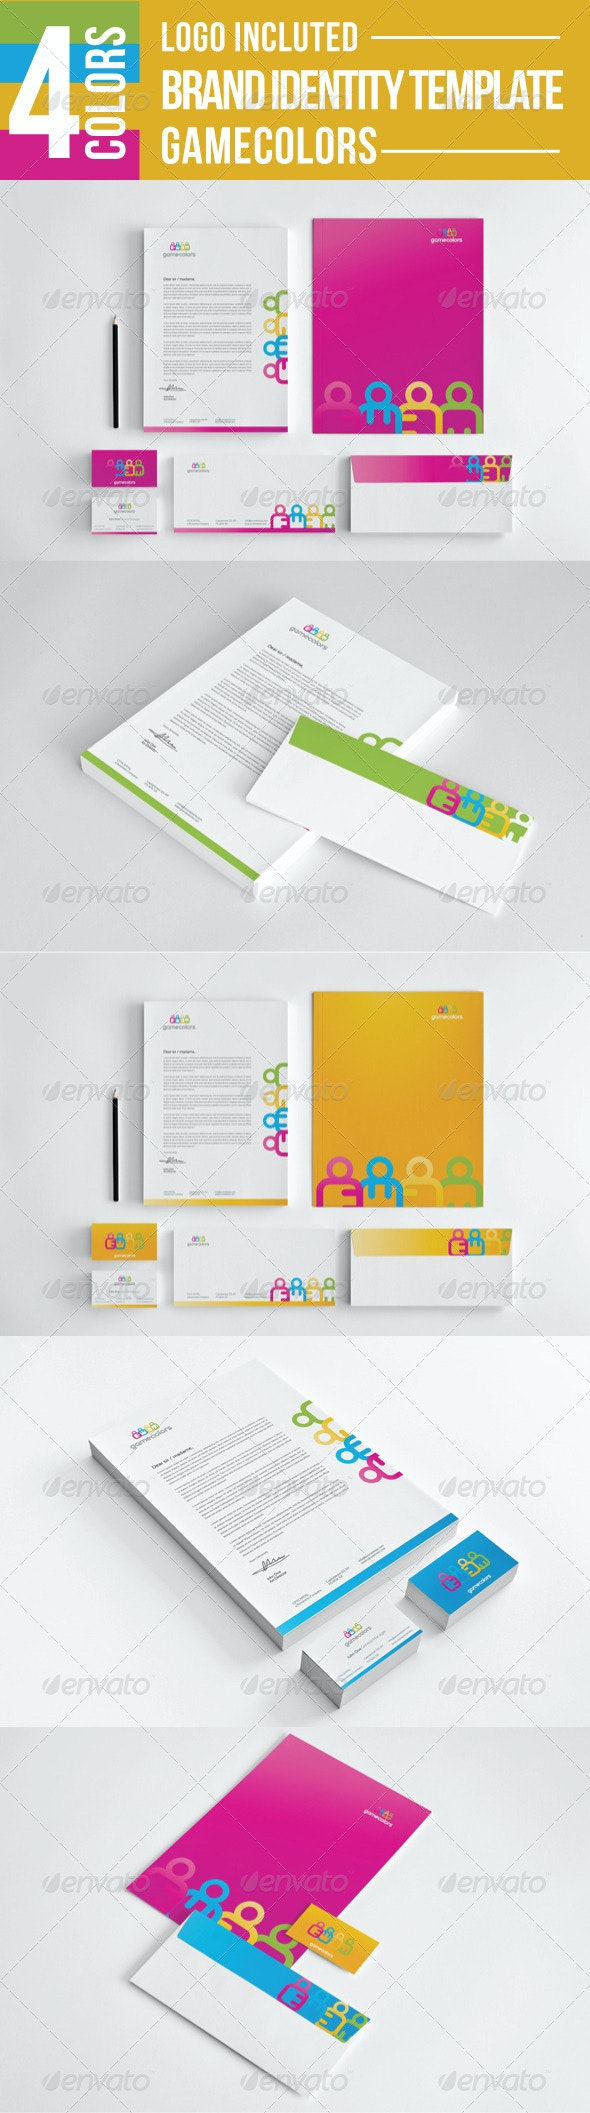 Game Colors Stationery - Stationery Print Templates